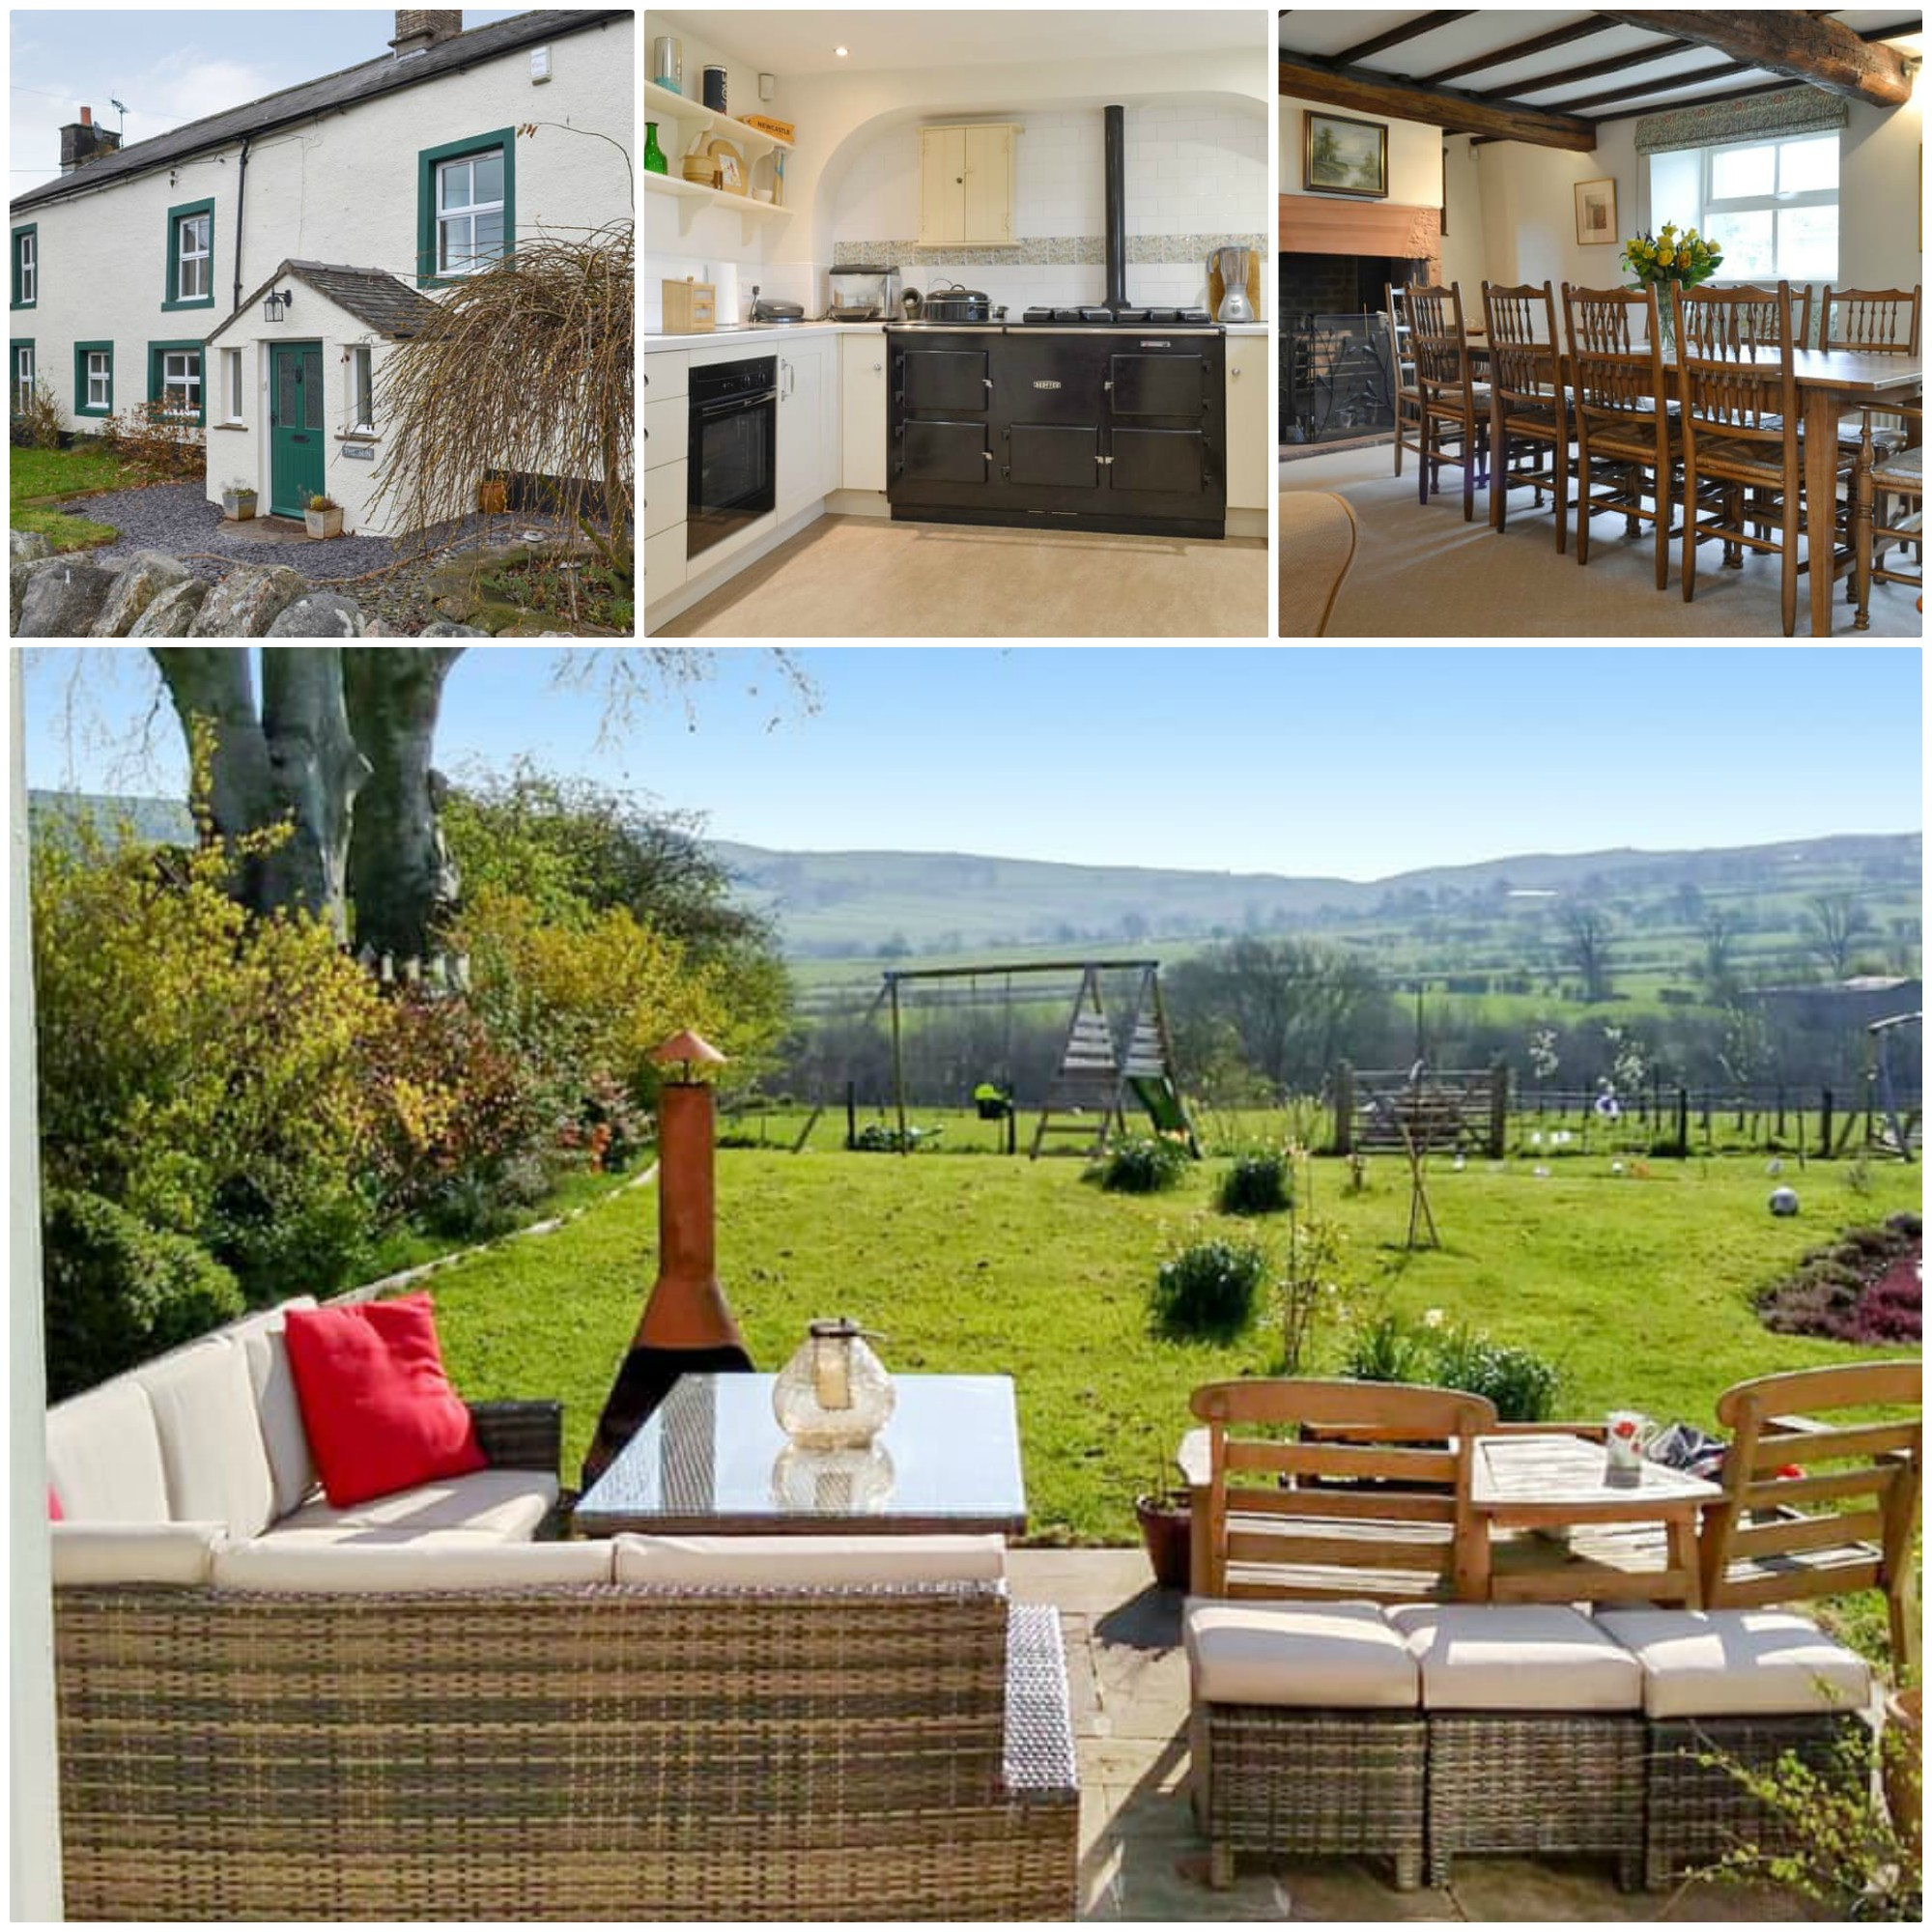 fabulous rural location with views - private enclosed garden and further shared garden with fire pit and kids play area